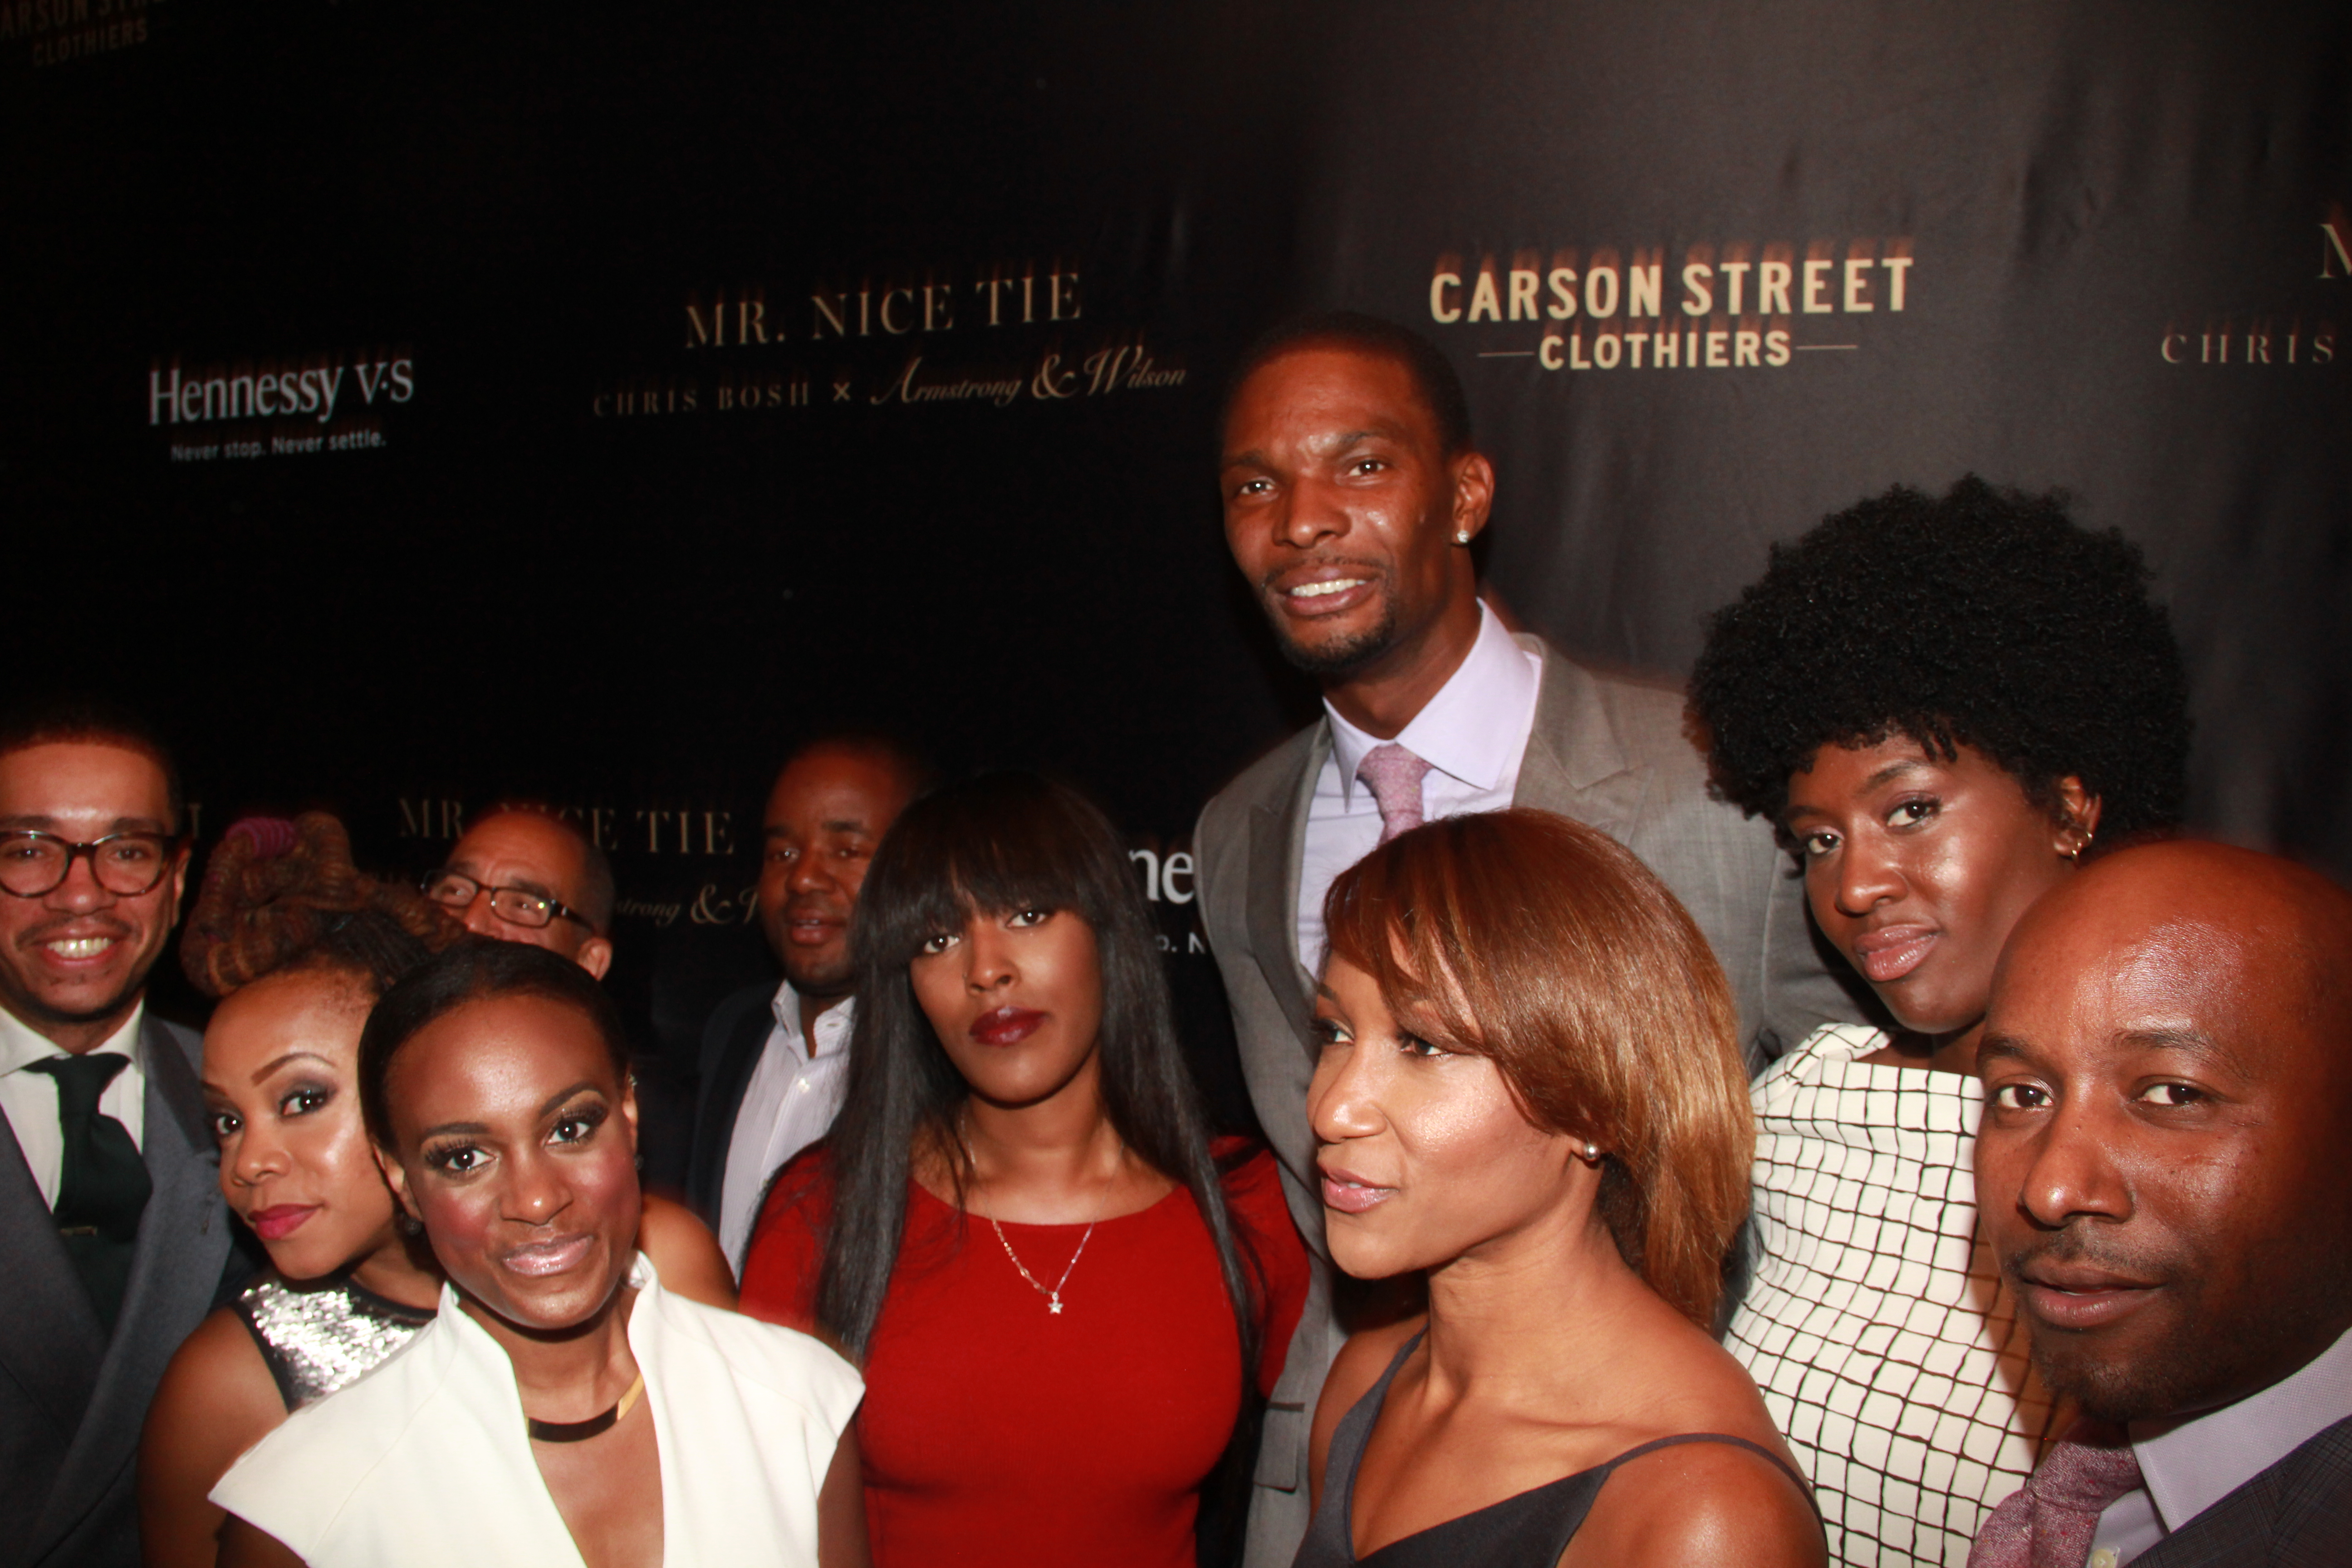 Chris-Bosh-Mr-Nice-tie-new-york-fashion-week-debut-armstrong-and-wilson-8